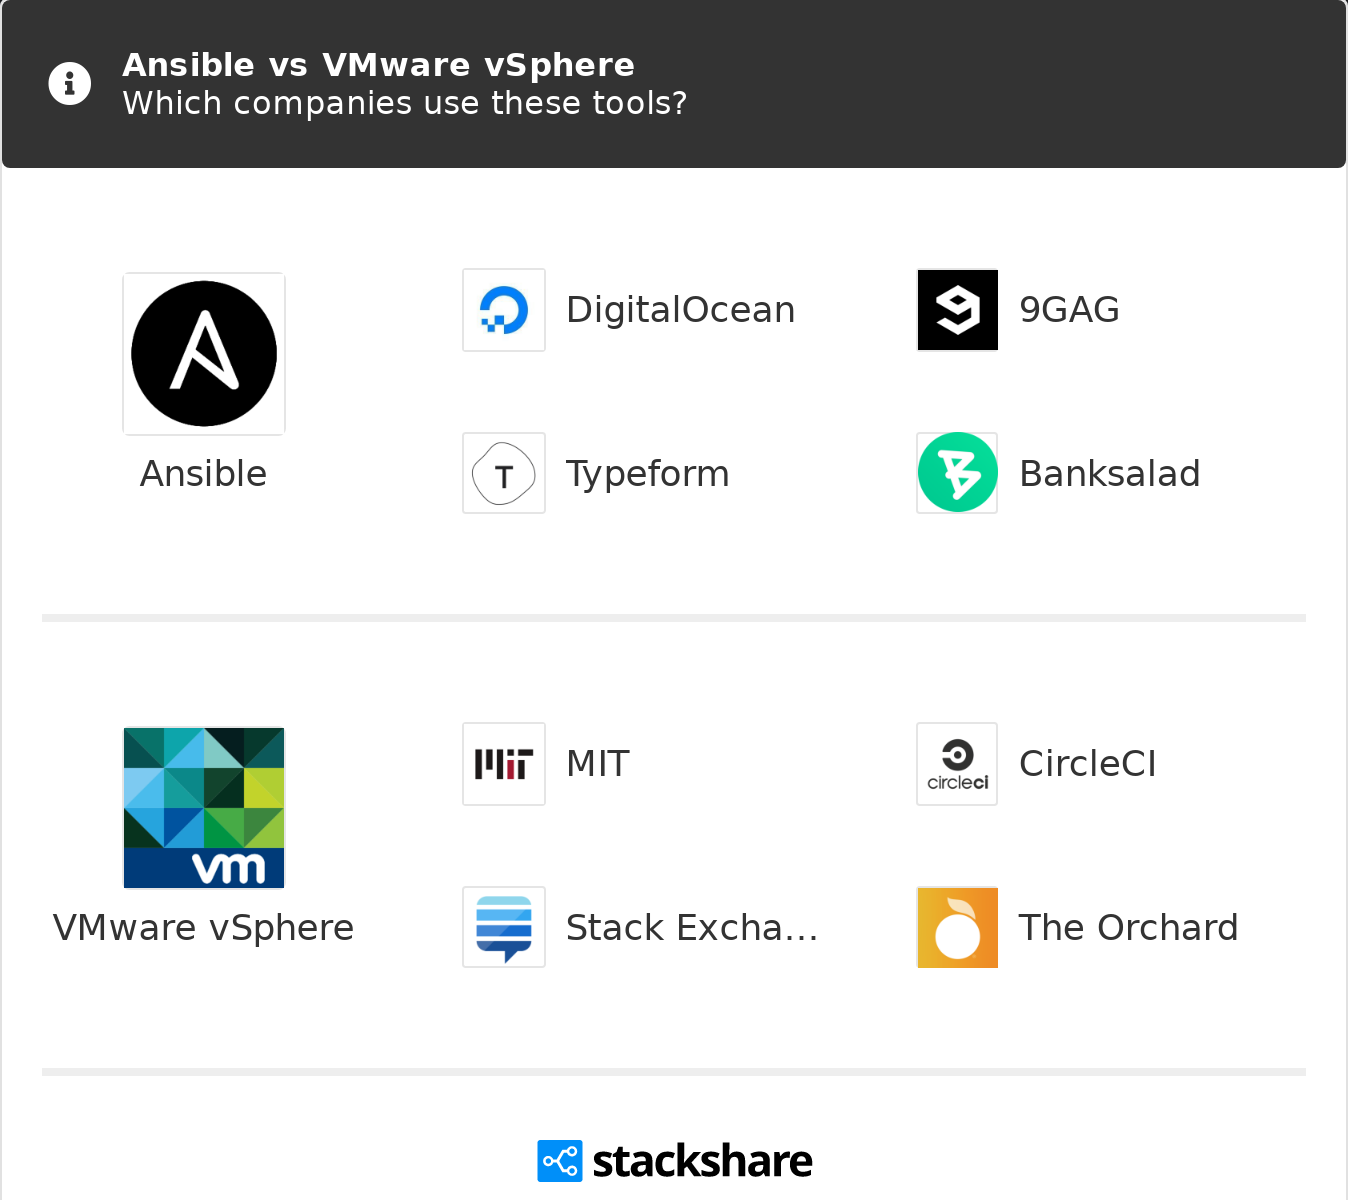 Ansible vs VMware vSphere | What are the differences?